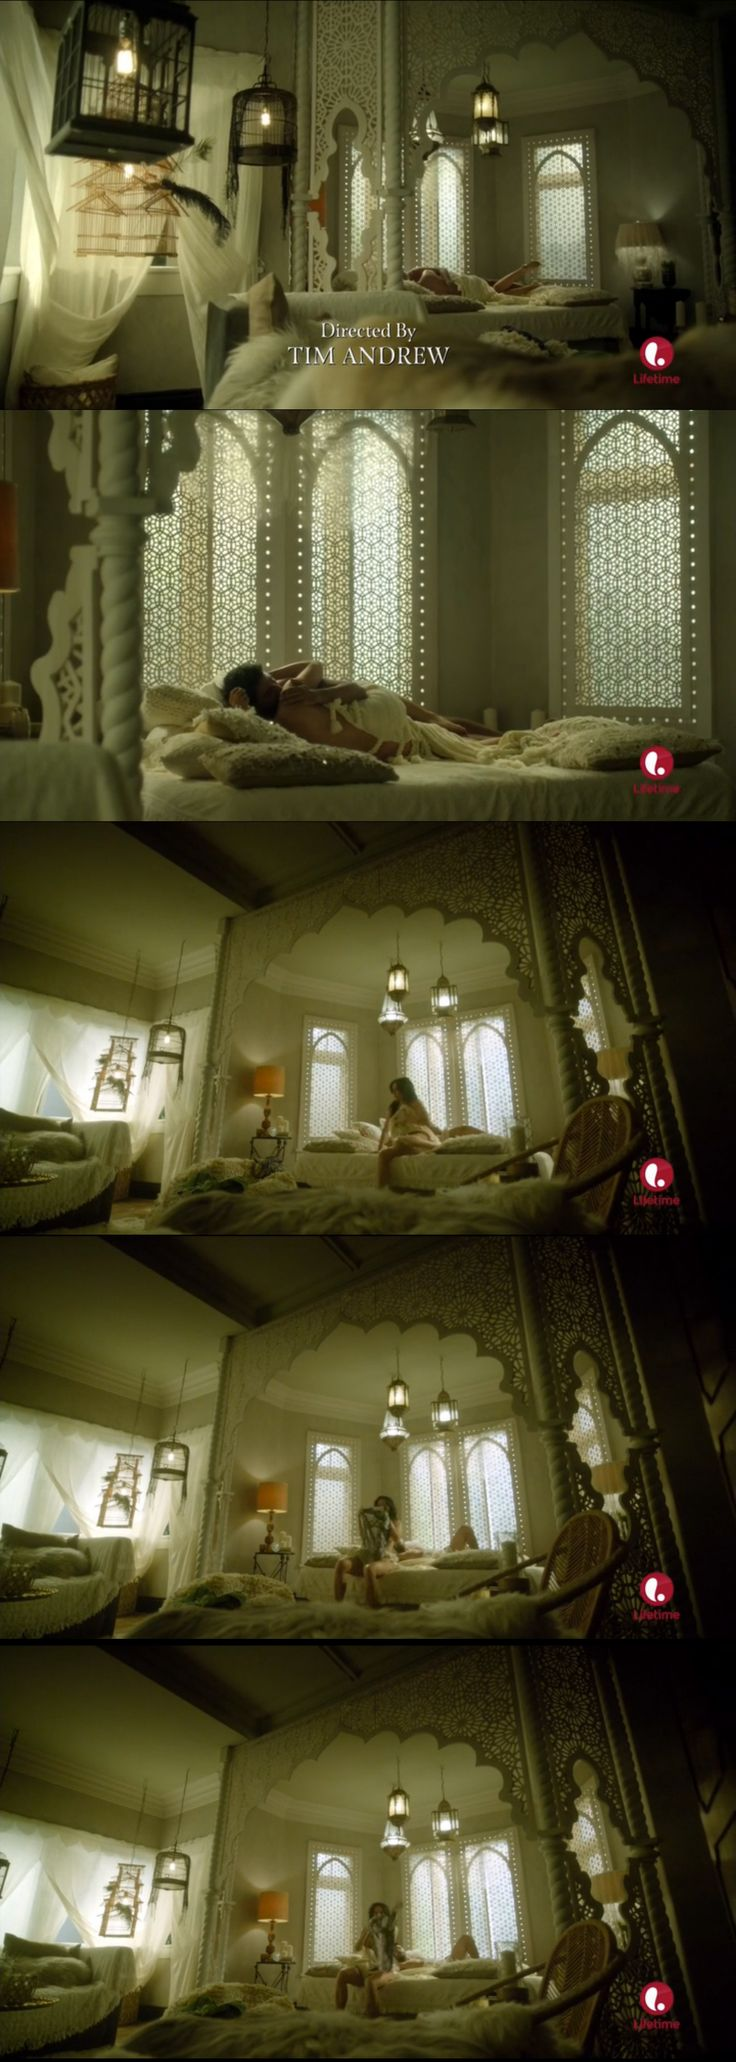 In love with Wendy's room from Witches of East End.